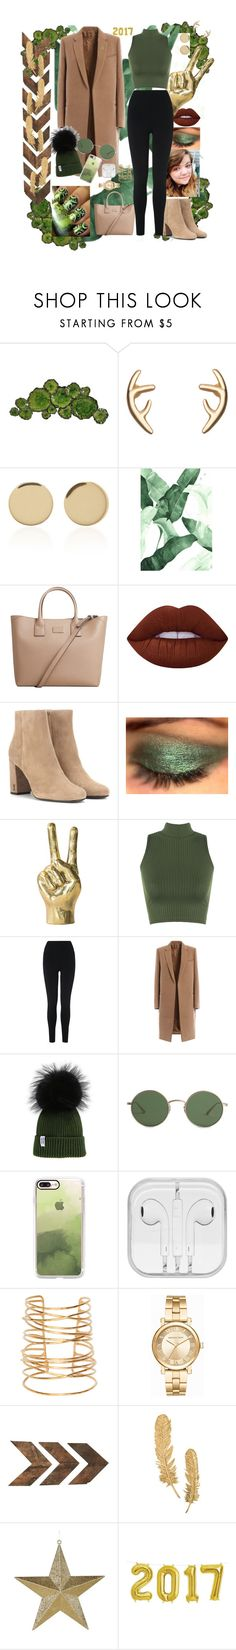 """""""Green with Envy"""" by lrochelle4life ❤ liked on Polyvore featuring Moe's Home Collection, Magdalena Frackowiak, MANGO, Lime Crime, Yves Saint Laurent, WearAll, L.K.Bennett, The Row, Casetify and RGB Cosmetics"""